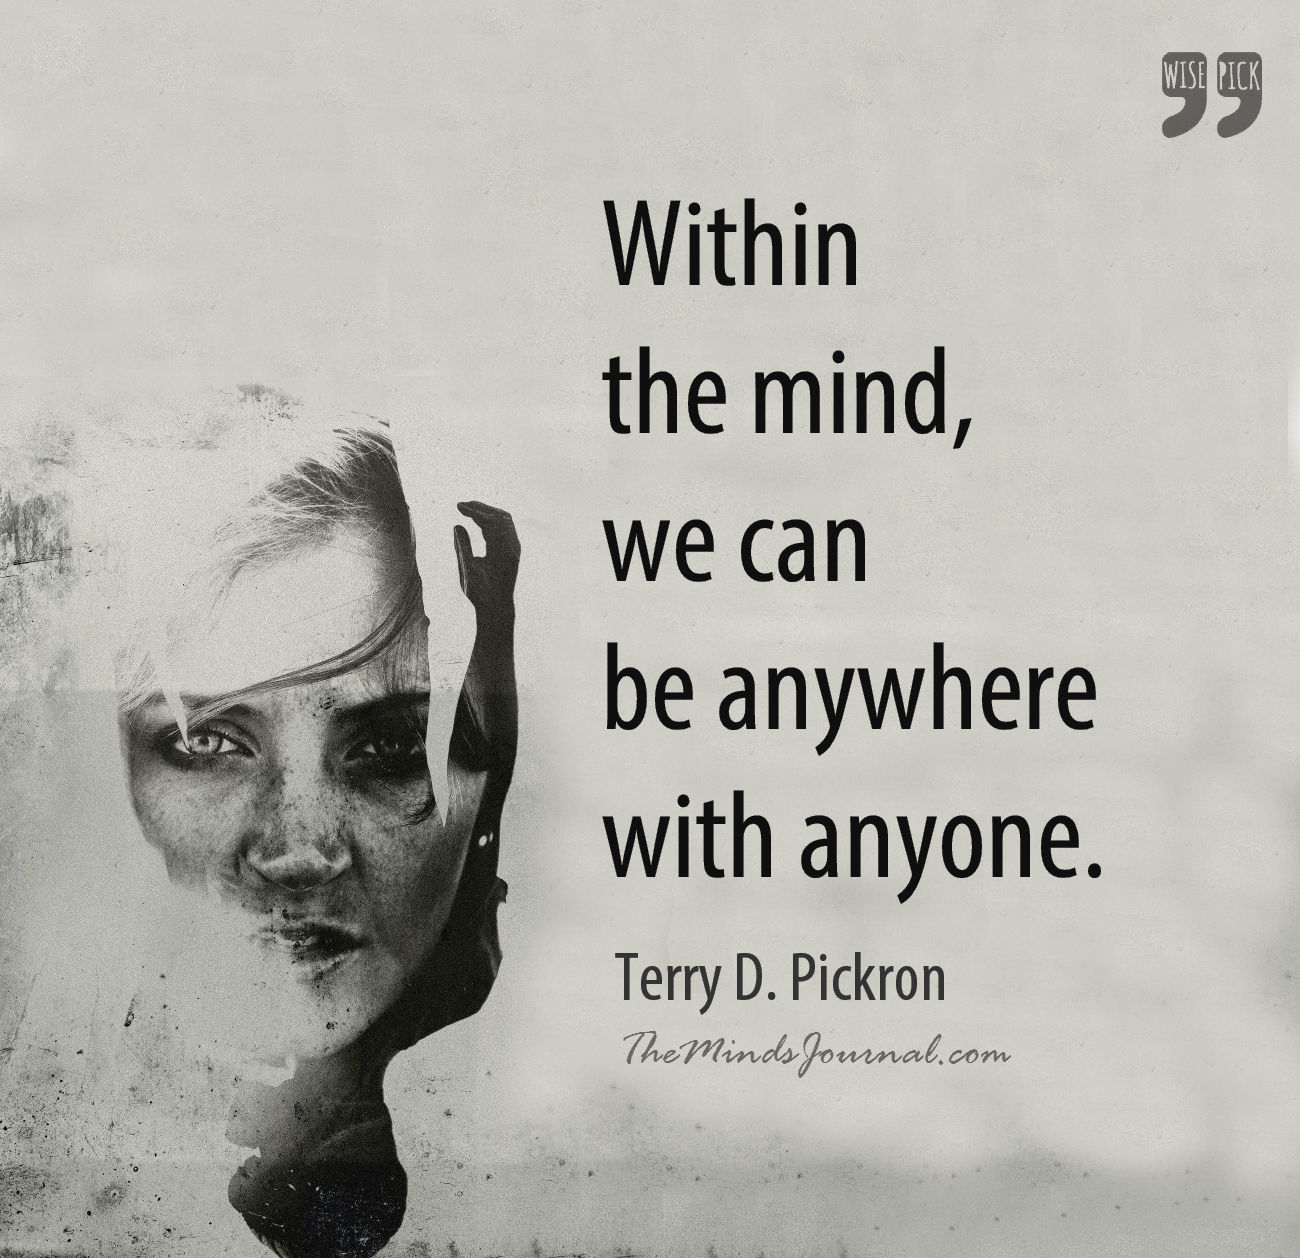 Within the Mind, we can be anywhere with anyone